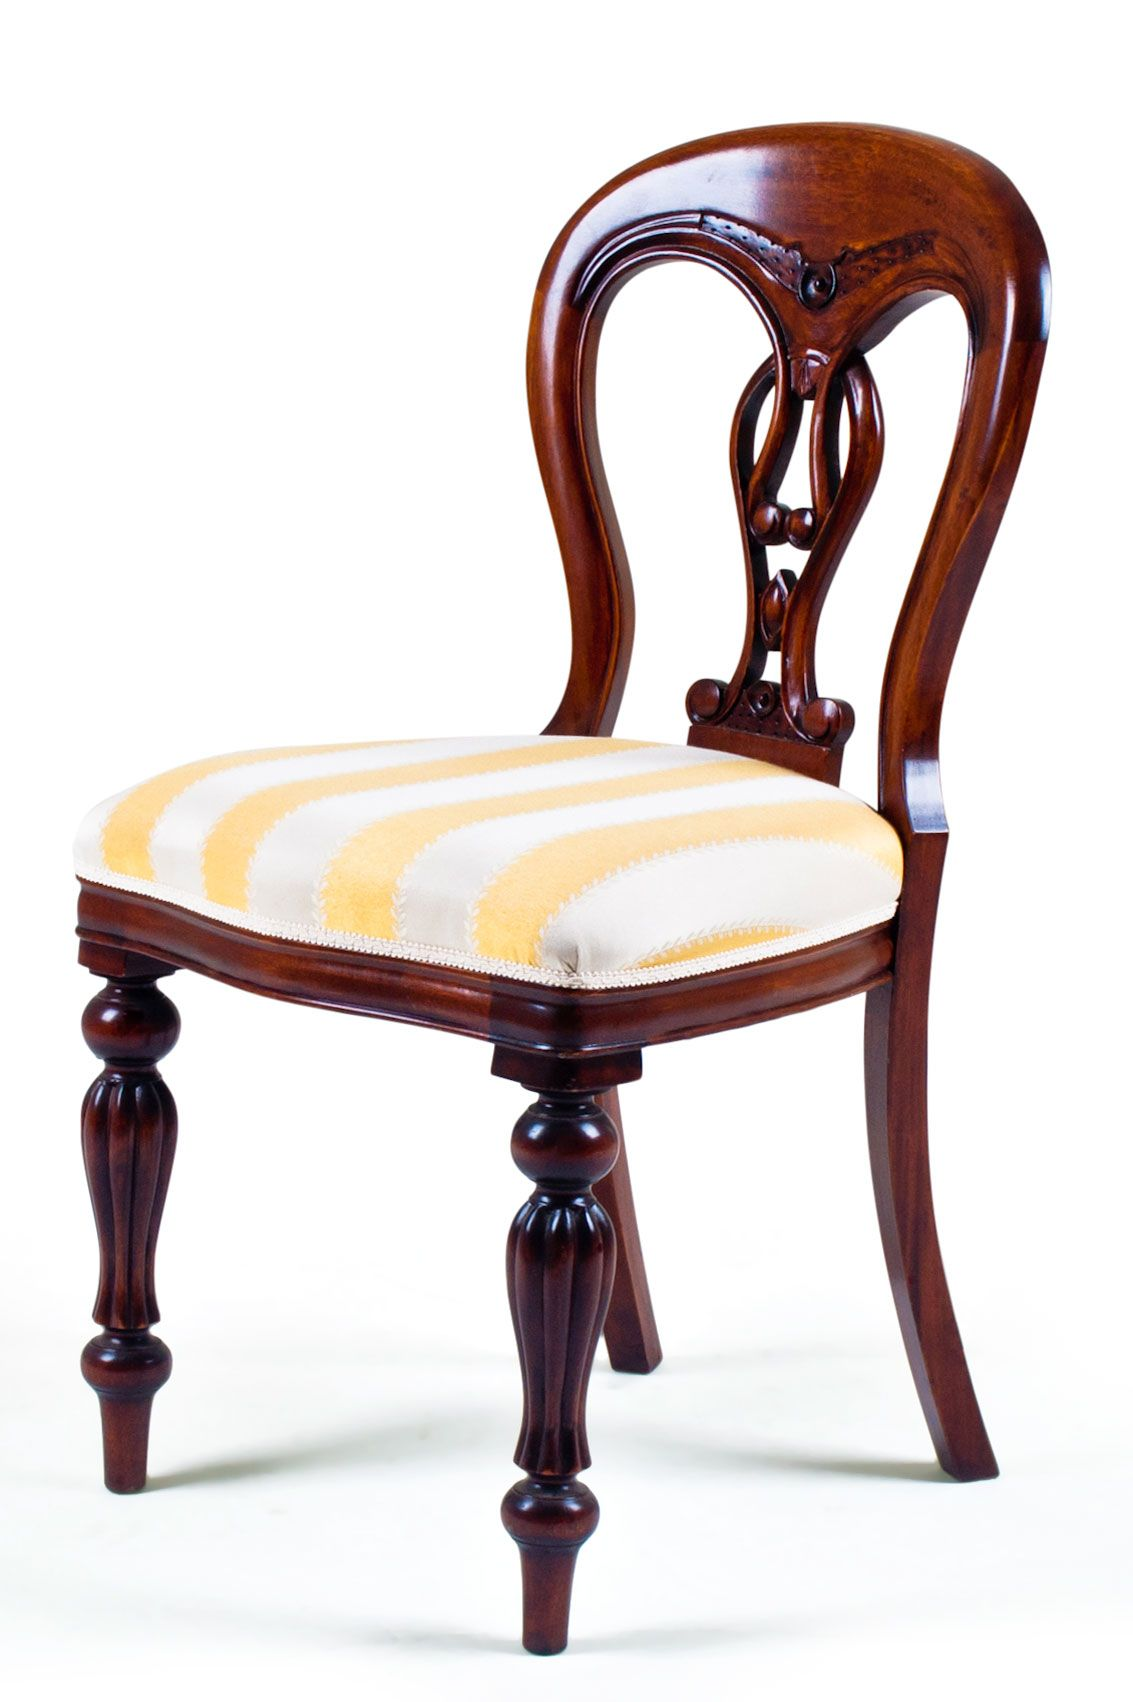 Antique victorian dining chairs - Fiddleback Dining Chair A Victorian Style Dining Chair With A Centre Splat Resembling A Fiddle